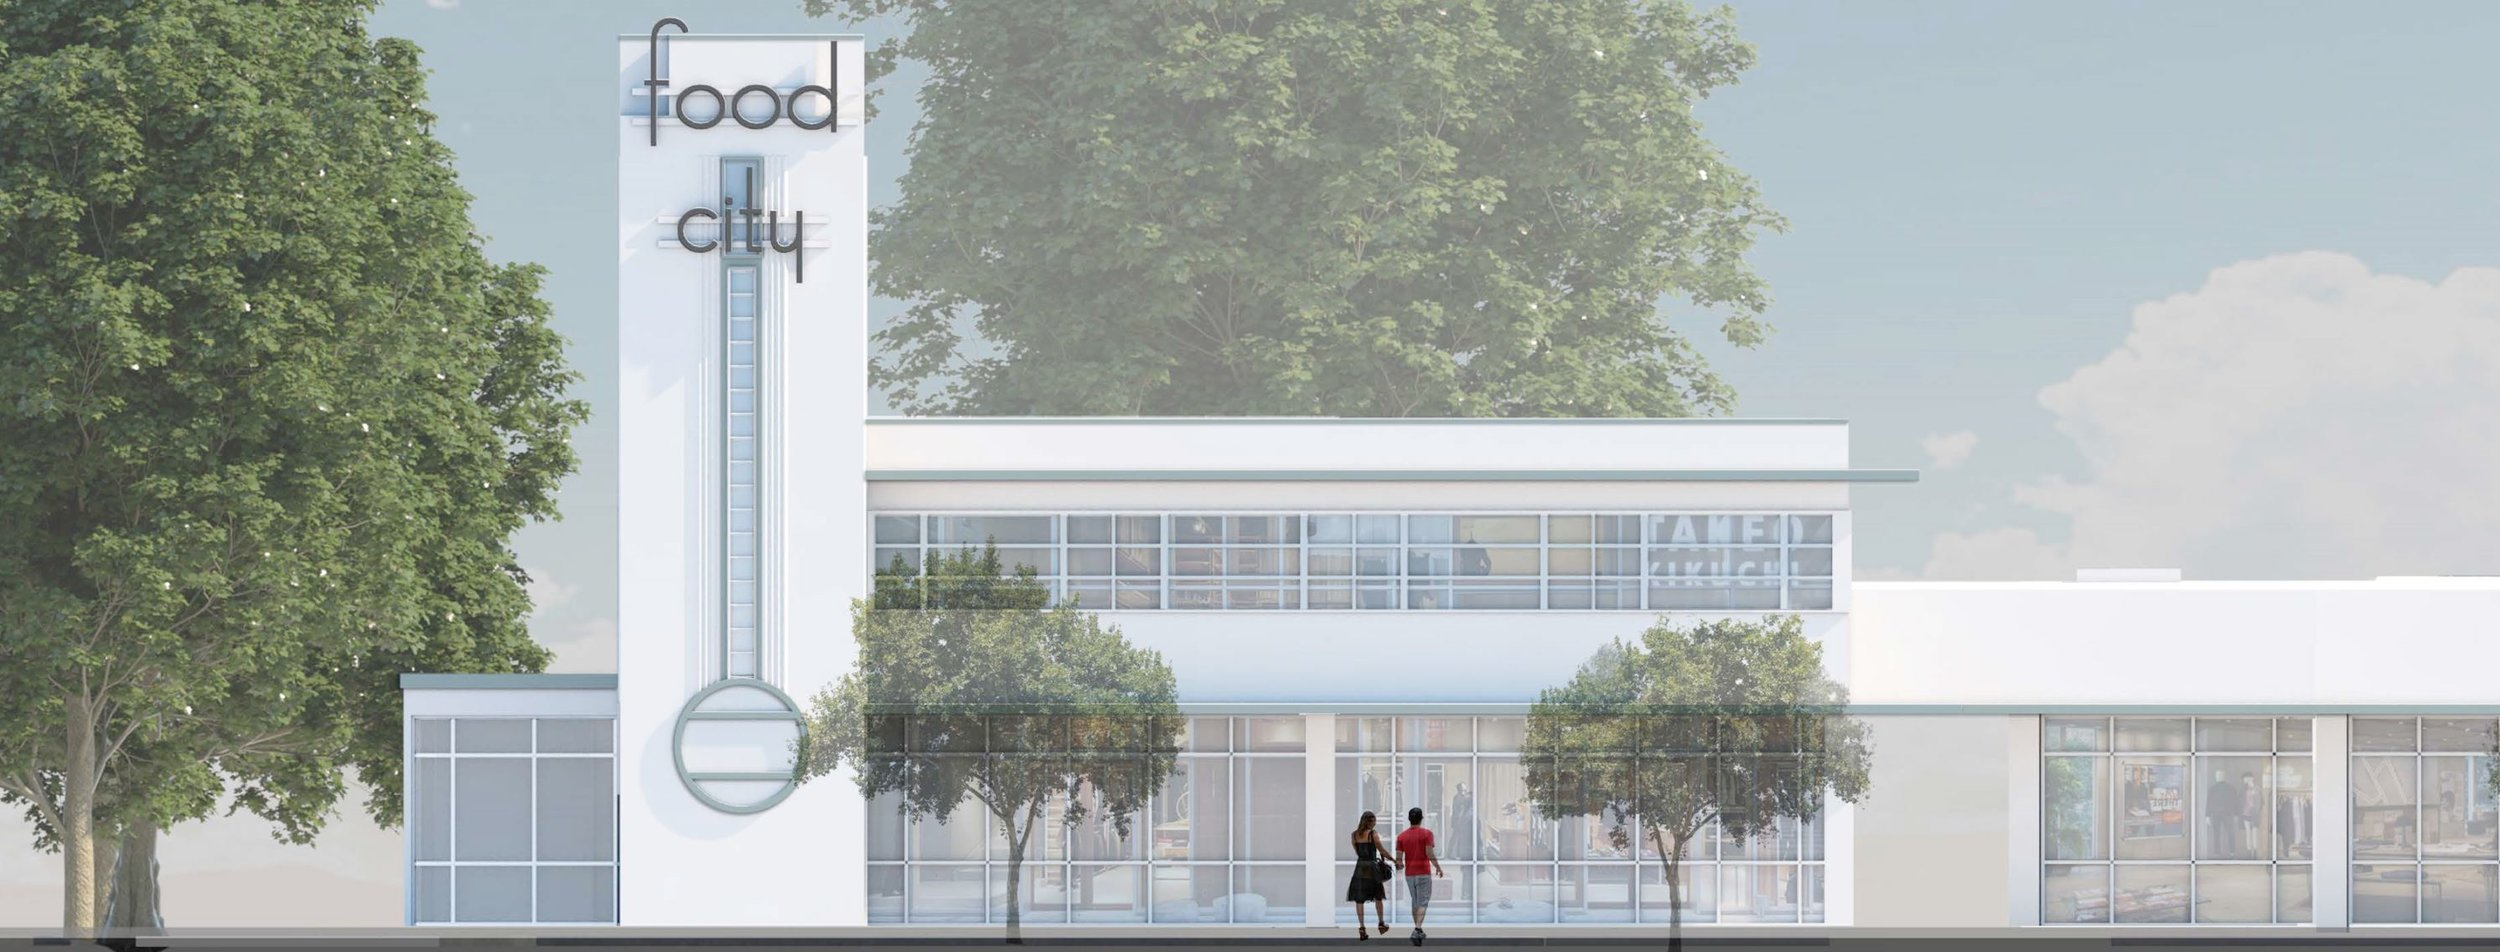 Conceptual Design of North Elevation of Historic Food City Building at Old Sonoma Road at Jefferson St in Napa, CA.  This image provided as a courtesy by Brooks-Street LLC and Grub LLC.